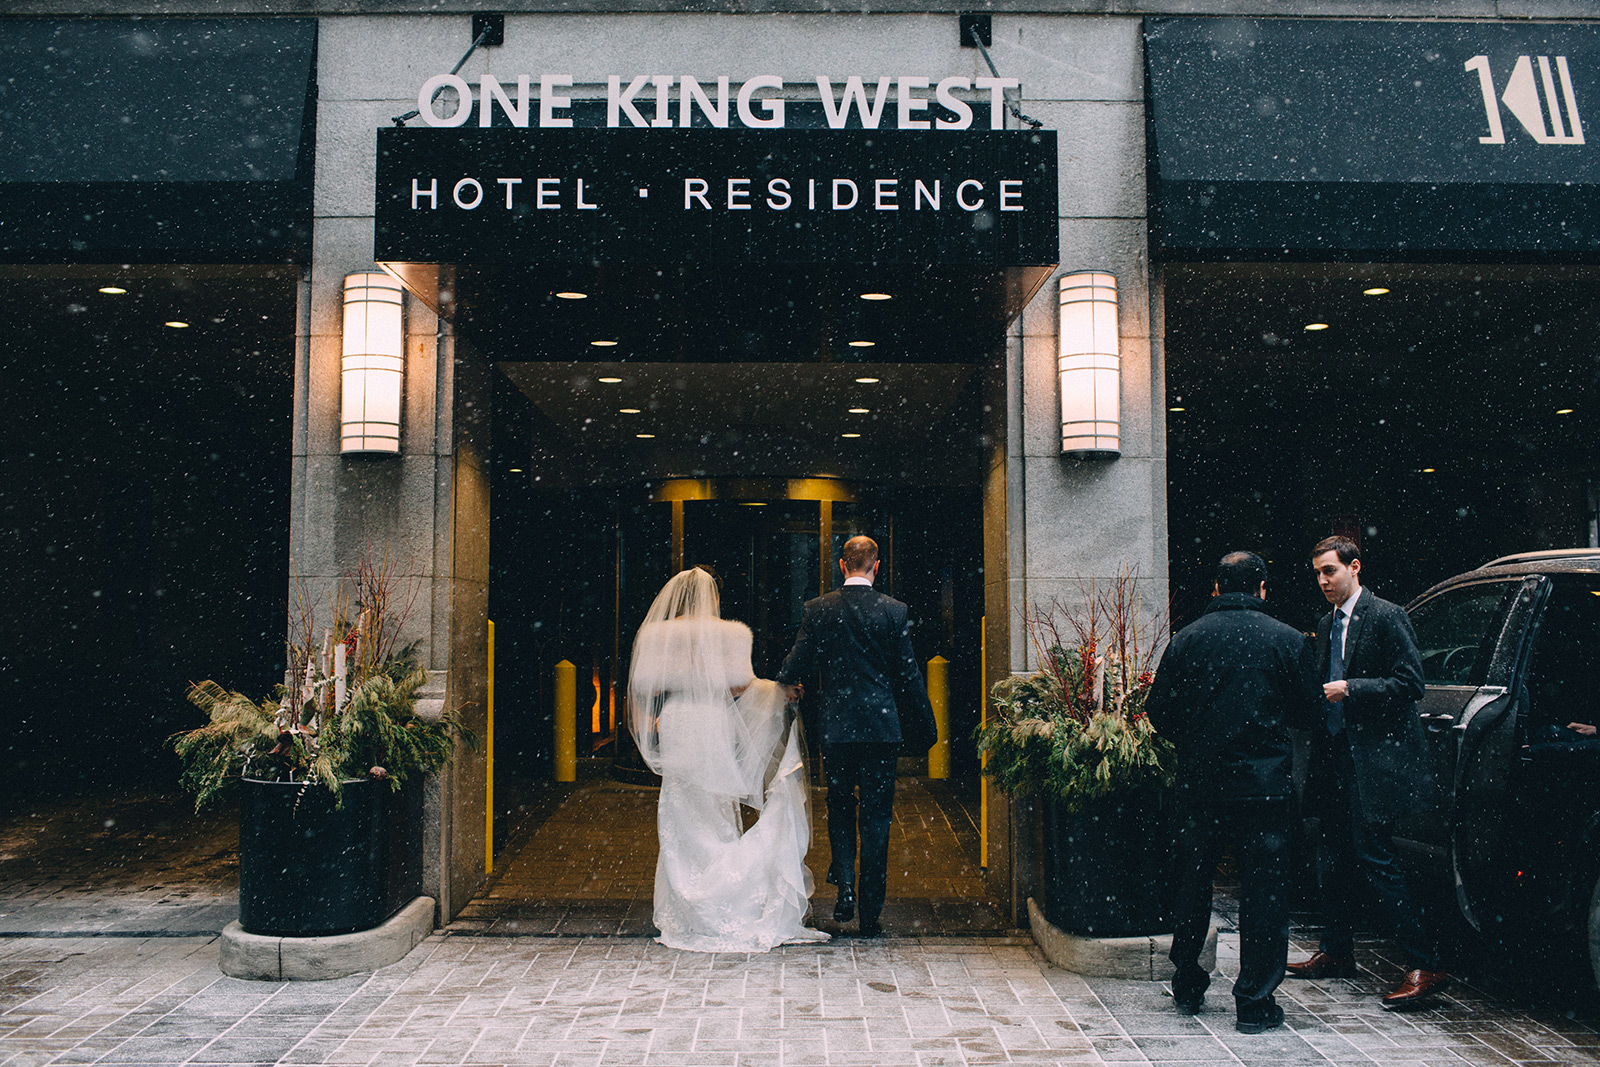 One-King-West-Toronto-wedding-photography_Sam-Wong-of-Visual-Cravings_KnR-01